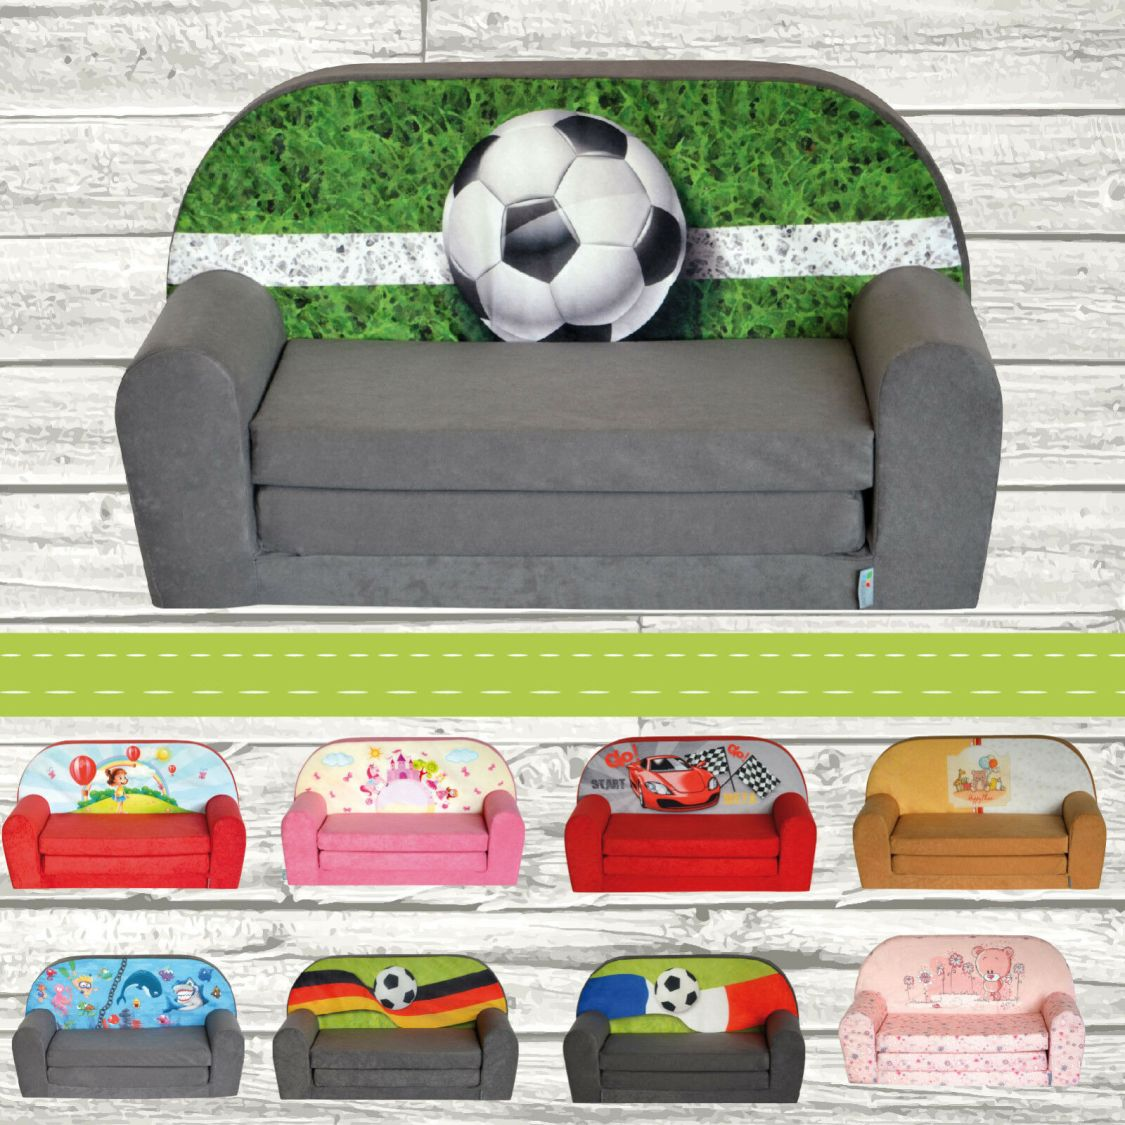 Kindersofa MINI Kindercouch Kindersessel Kindermöbel Sofa FORTISLINE